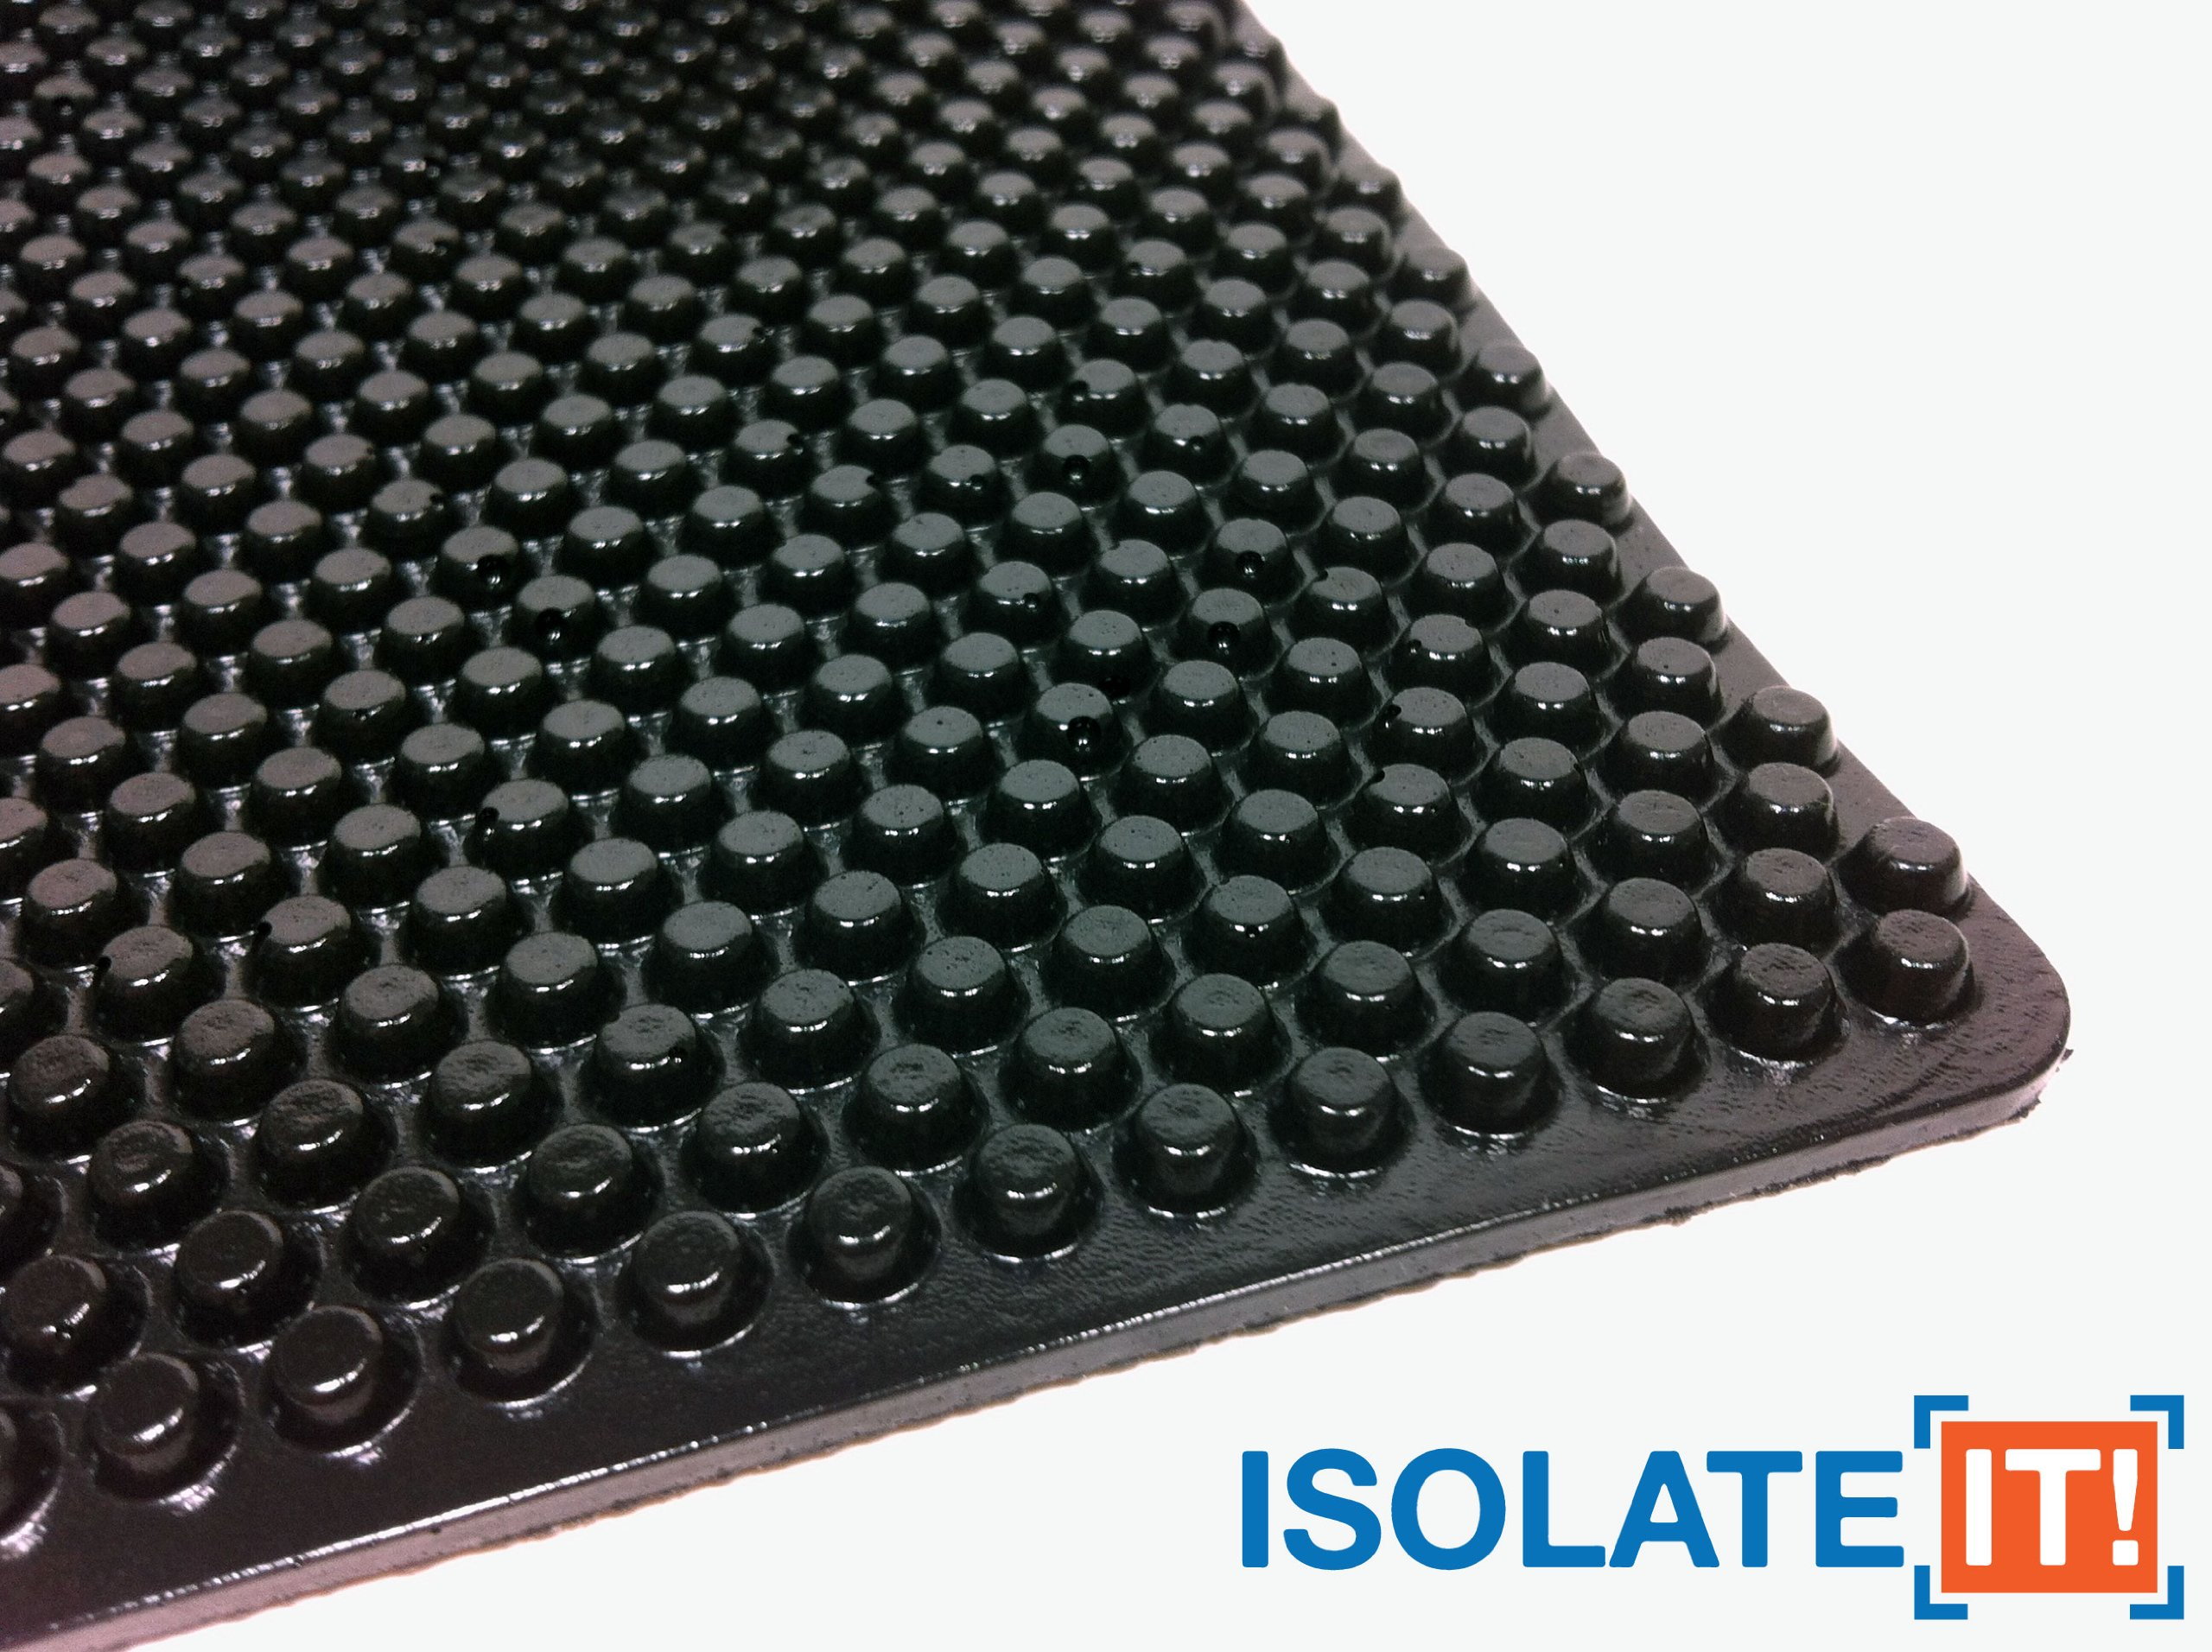 Isolate It!: Sorbothane X-Tra Flex Acoustic Vibration Damping Sheet Stock (3/16 x 12 x 14in) 50 Duro - 1 Sheet by Isolate It! (Image #2)